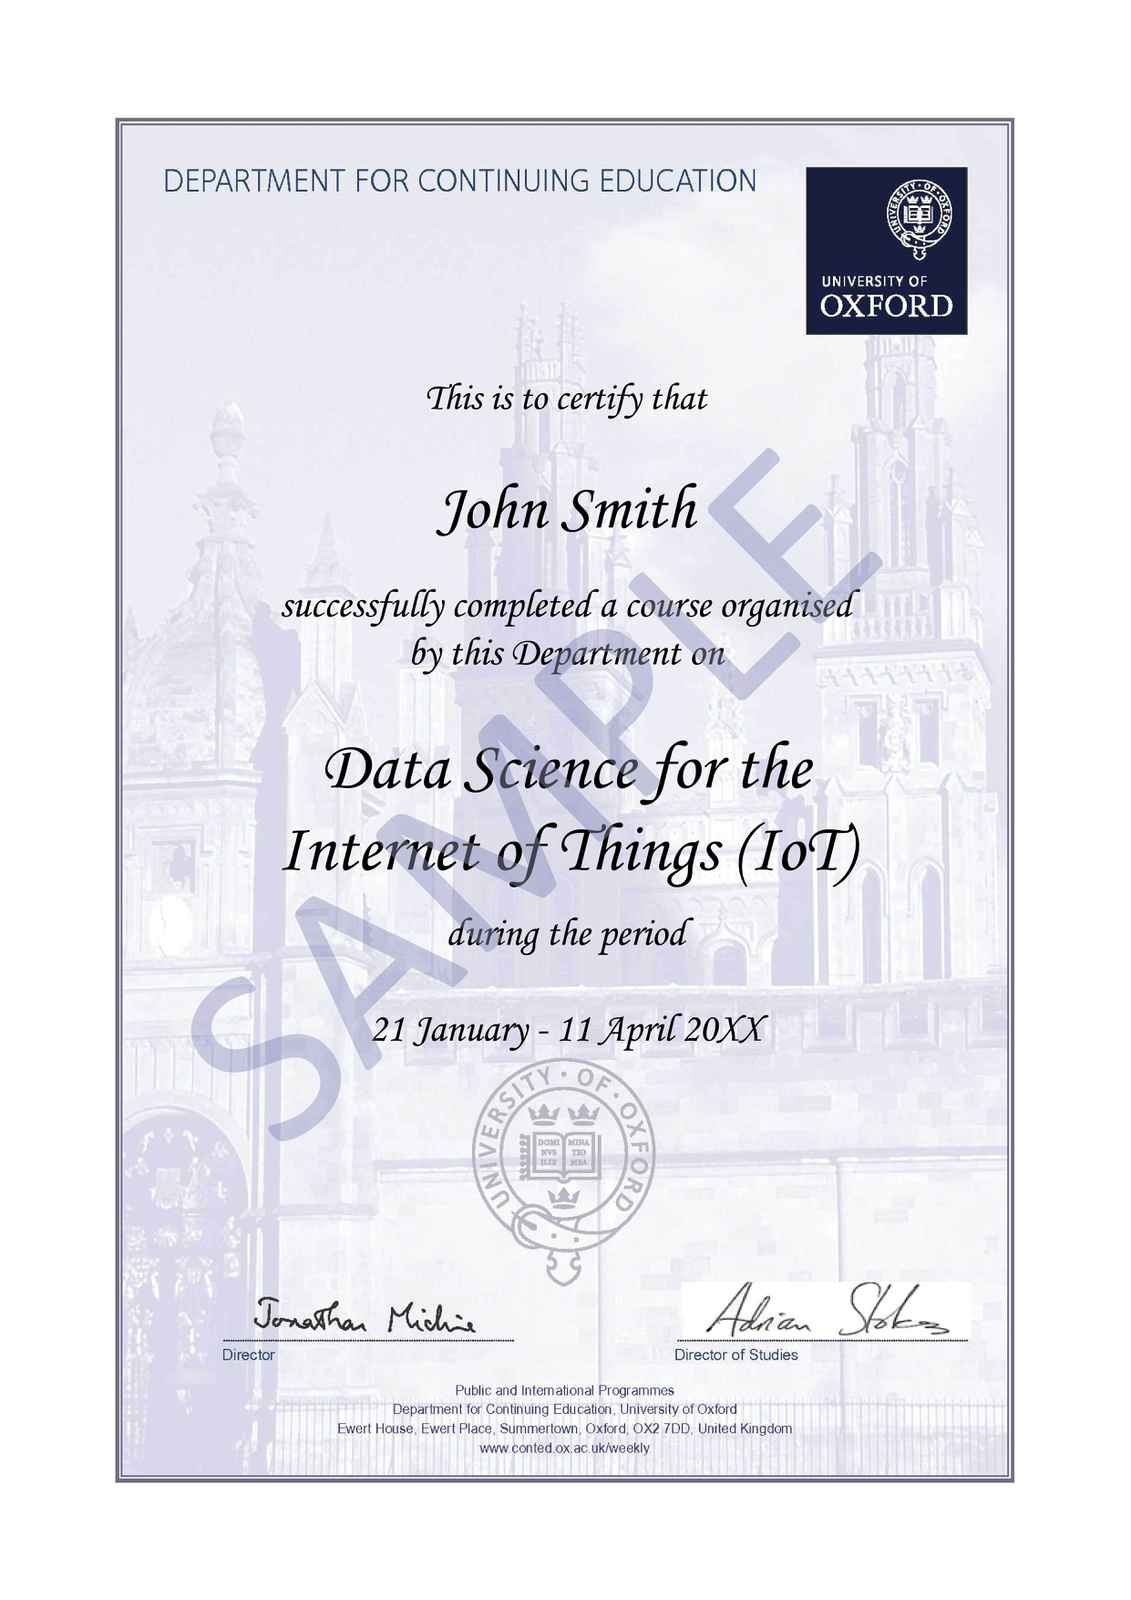 Data science for the internet of things iot oxford university participants who satisfy the course requirements will receive a certificate of attendance the sample shown is an illustration only and the wording will xflitez Images